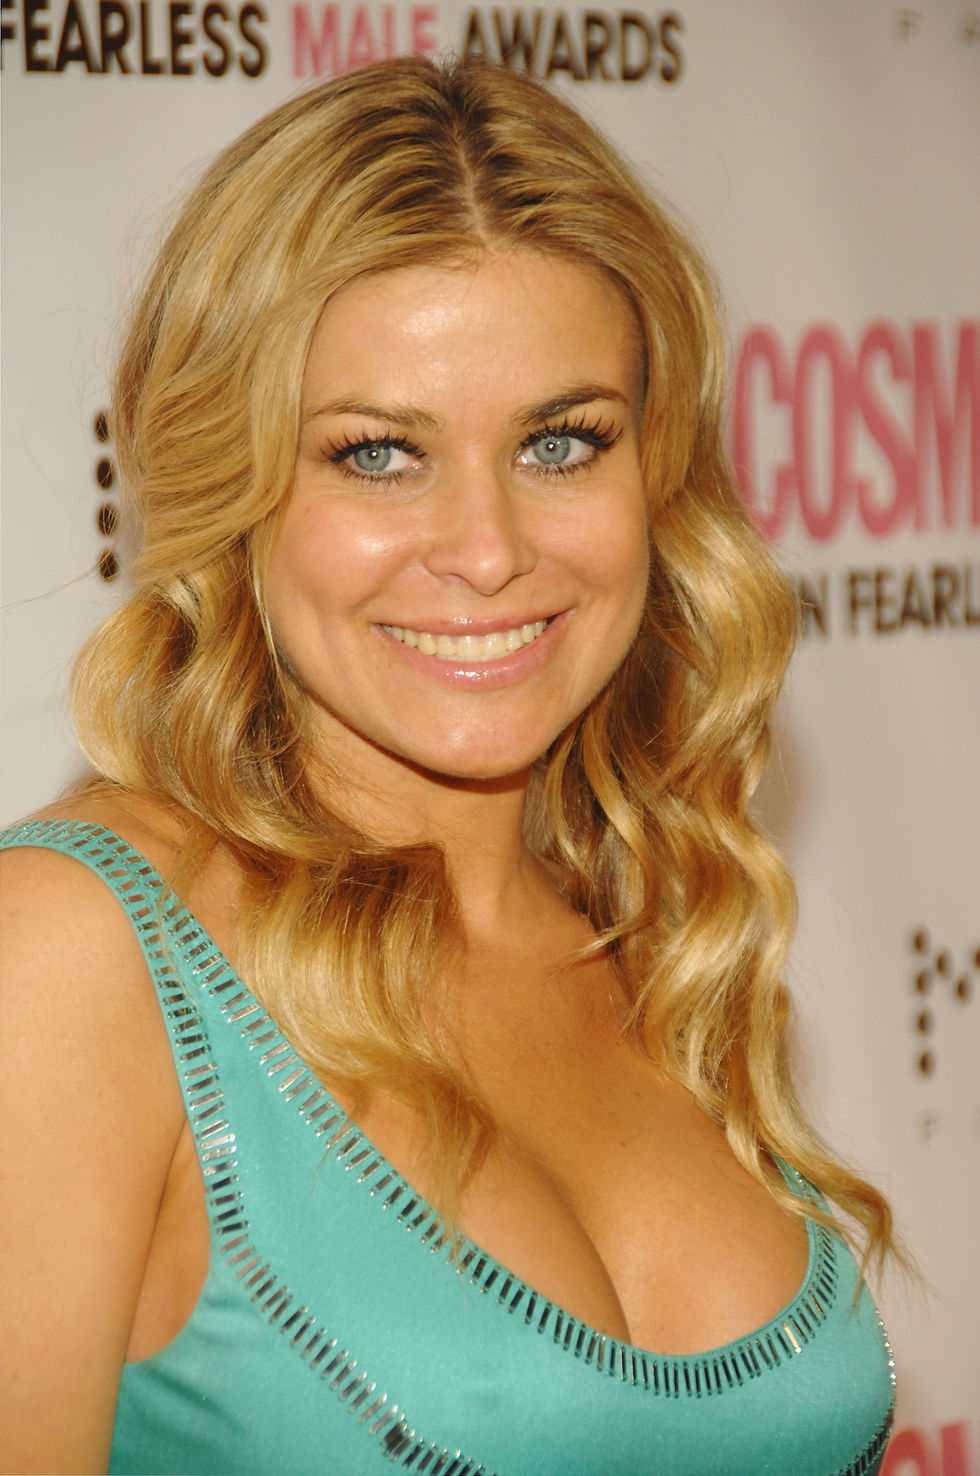 carmen-electra-cosmopolitan-fun-fearless-male-awards-in-new-york-01